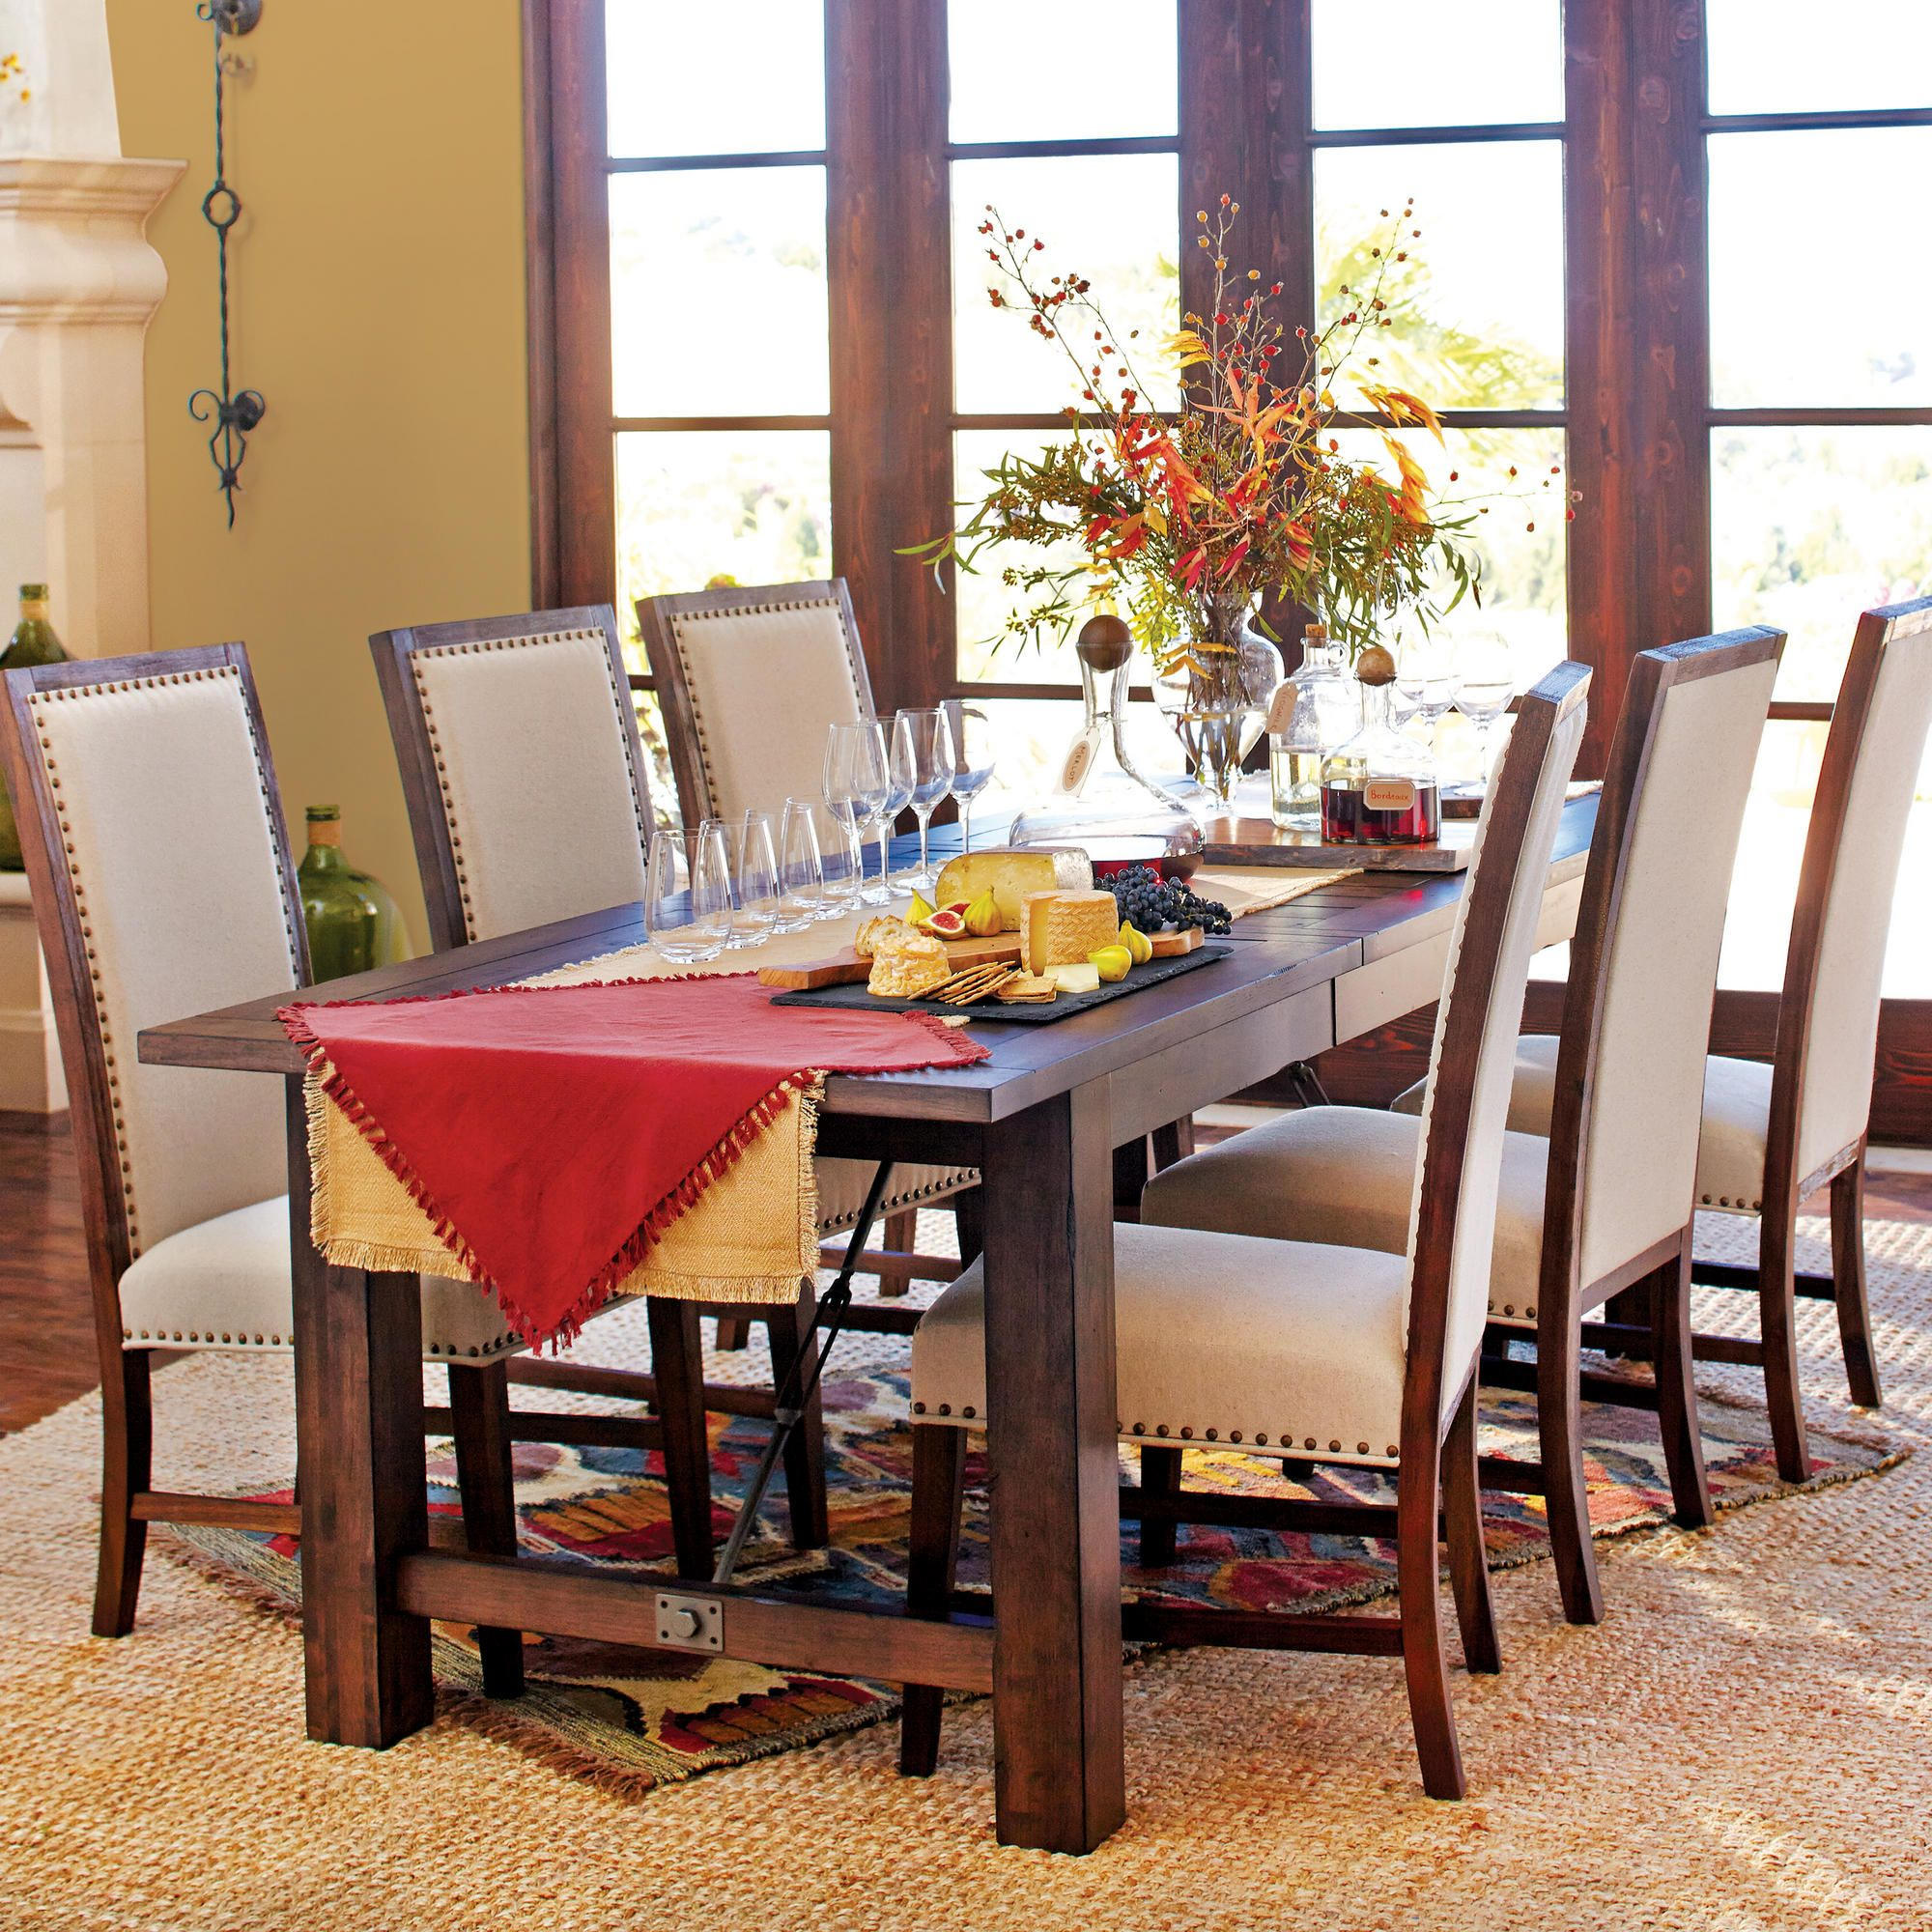 World Market S Garner Extension Dining Table 599 Http Www Worldmarket Com Product Garner Ext Table D Extension Dining Table Dining Table Dining Room Table